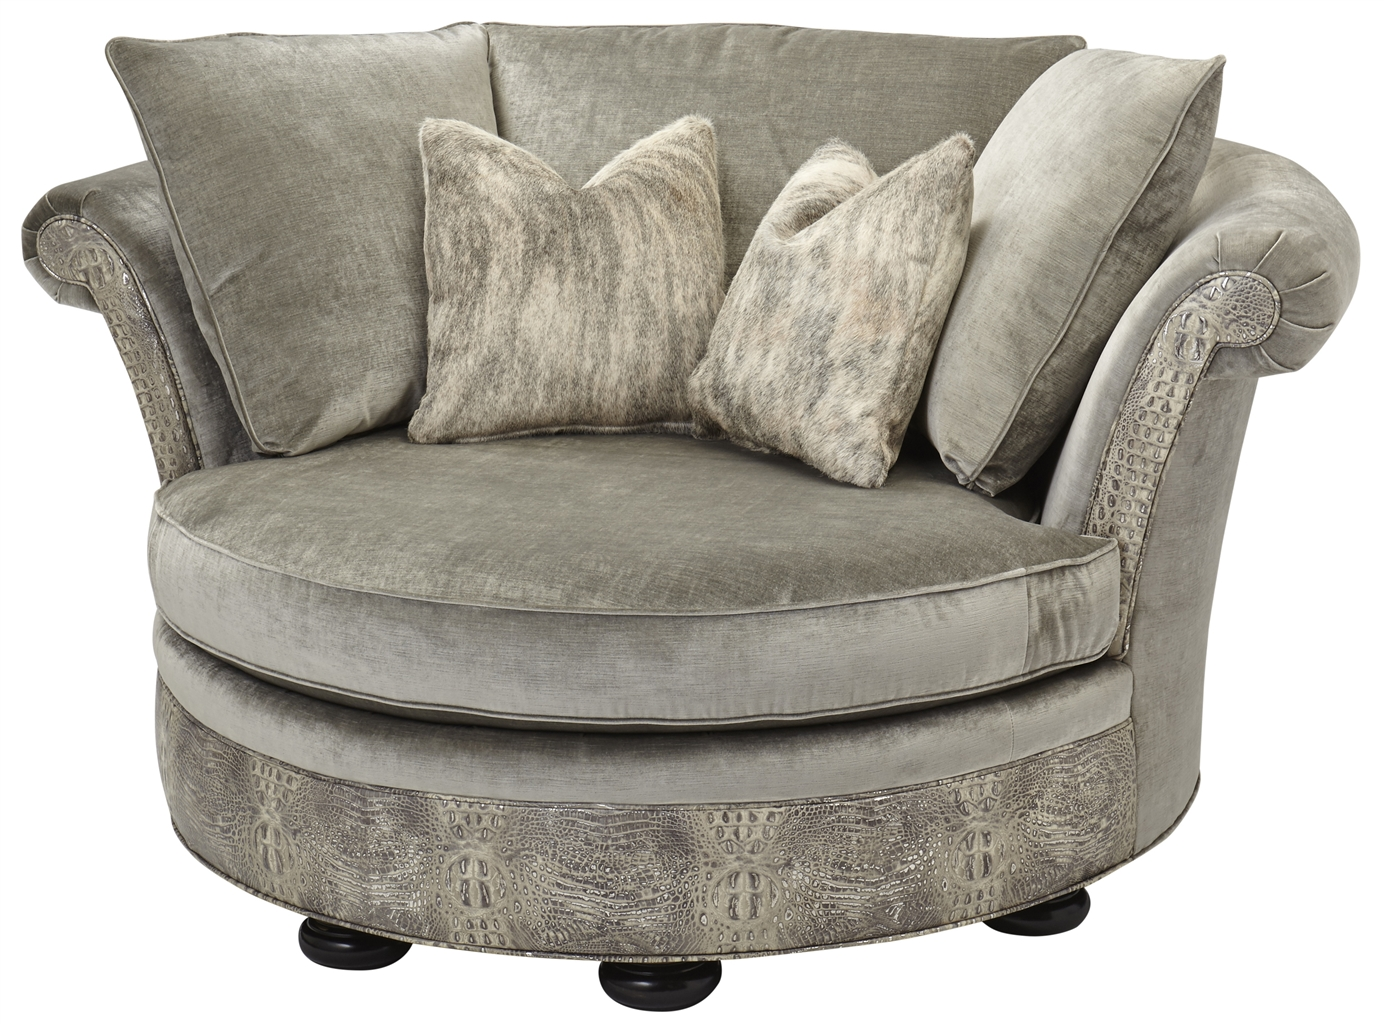 Low back comfy round sofa for Low couch